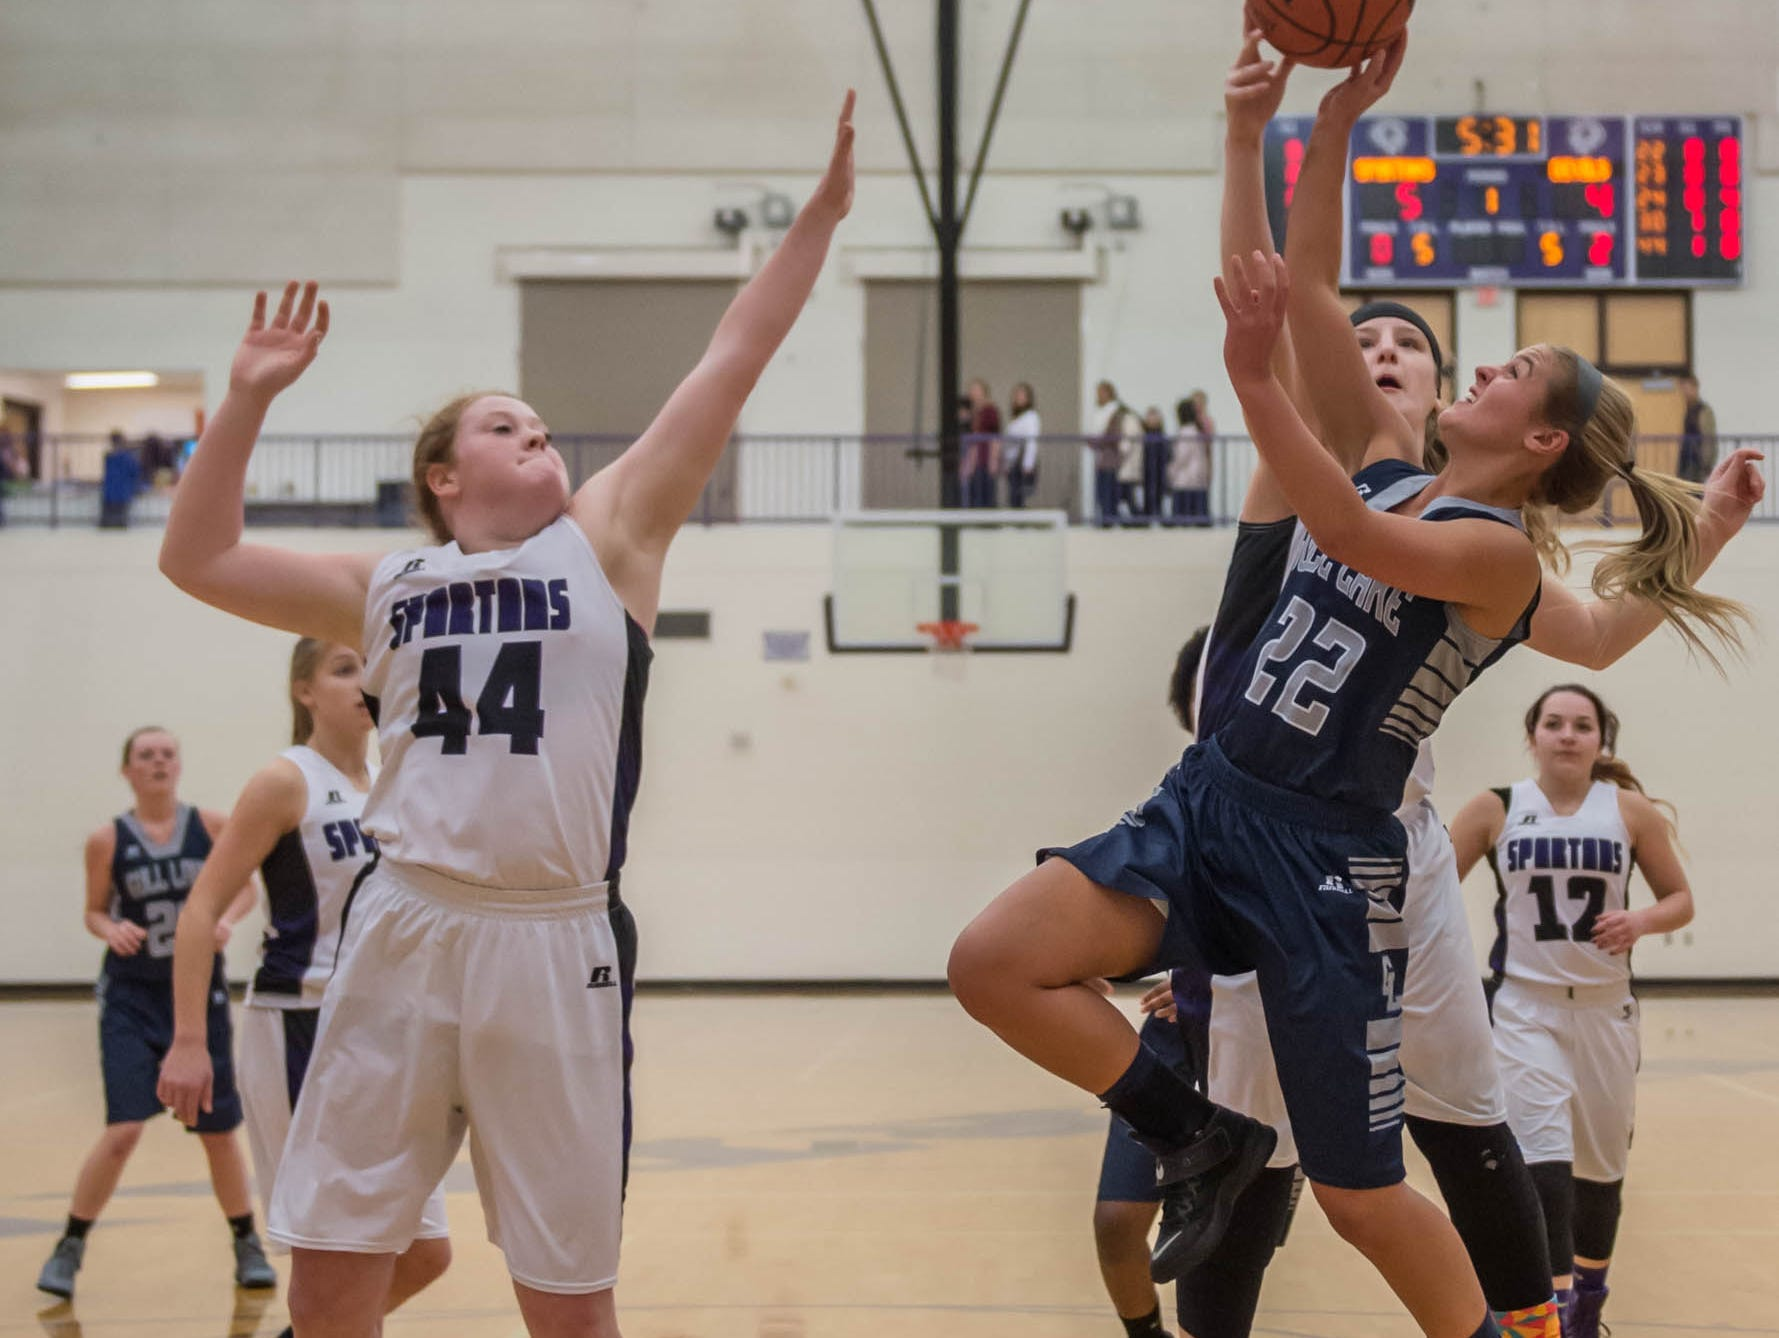 Gull Lakes's Braedan Snow takes her shot against Lakeview in Friday evening's game.